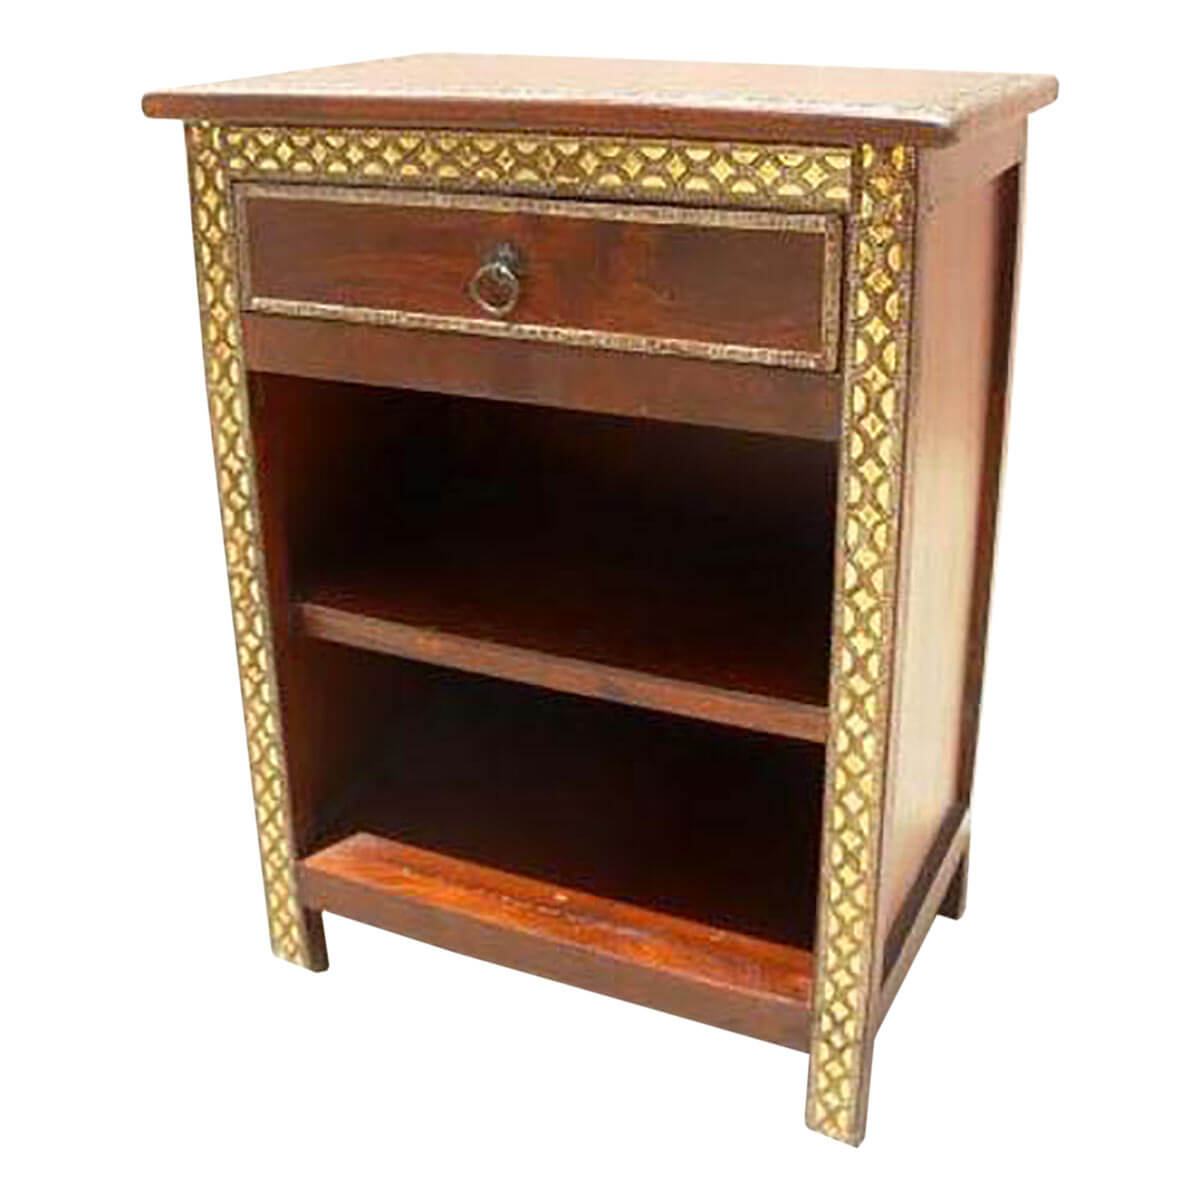 Wood Side Tables With Storage ~ Wood brass accent storage end night stand side table